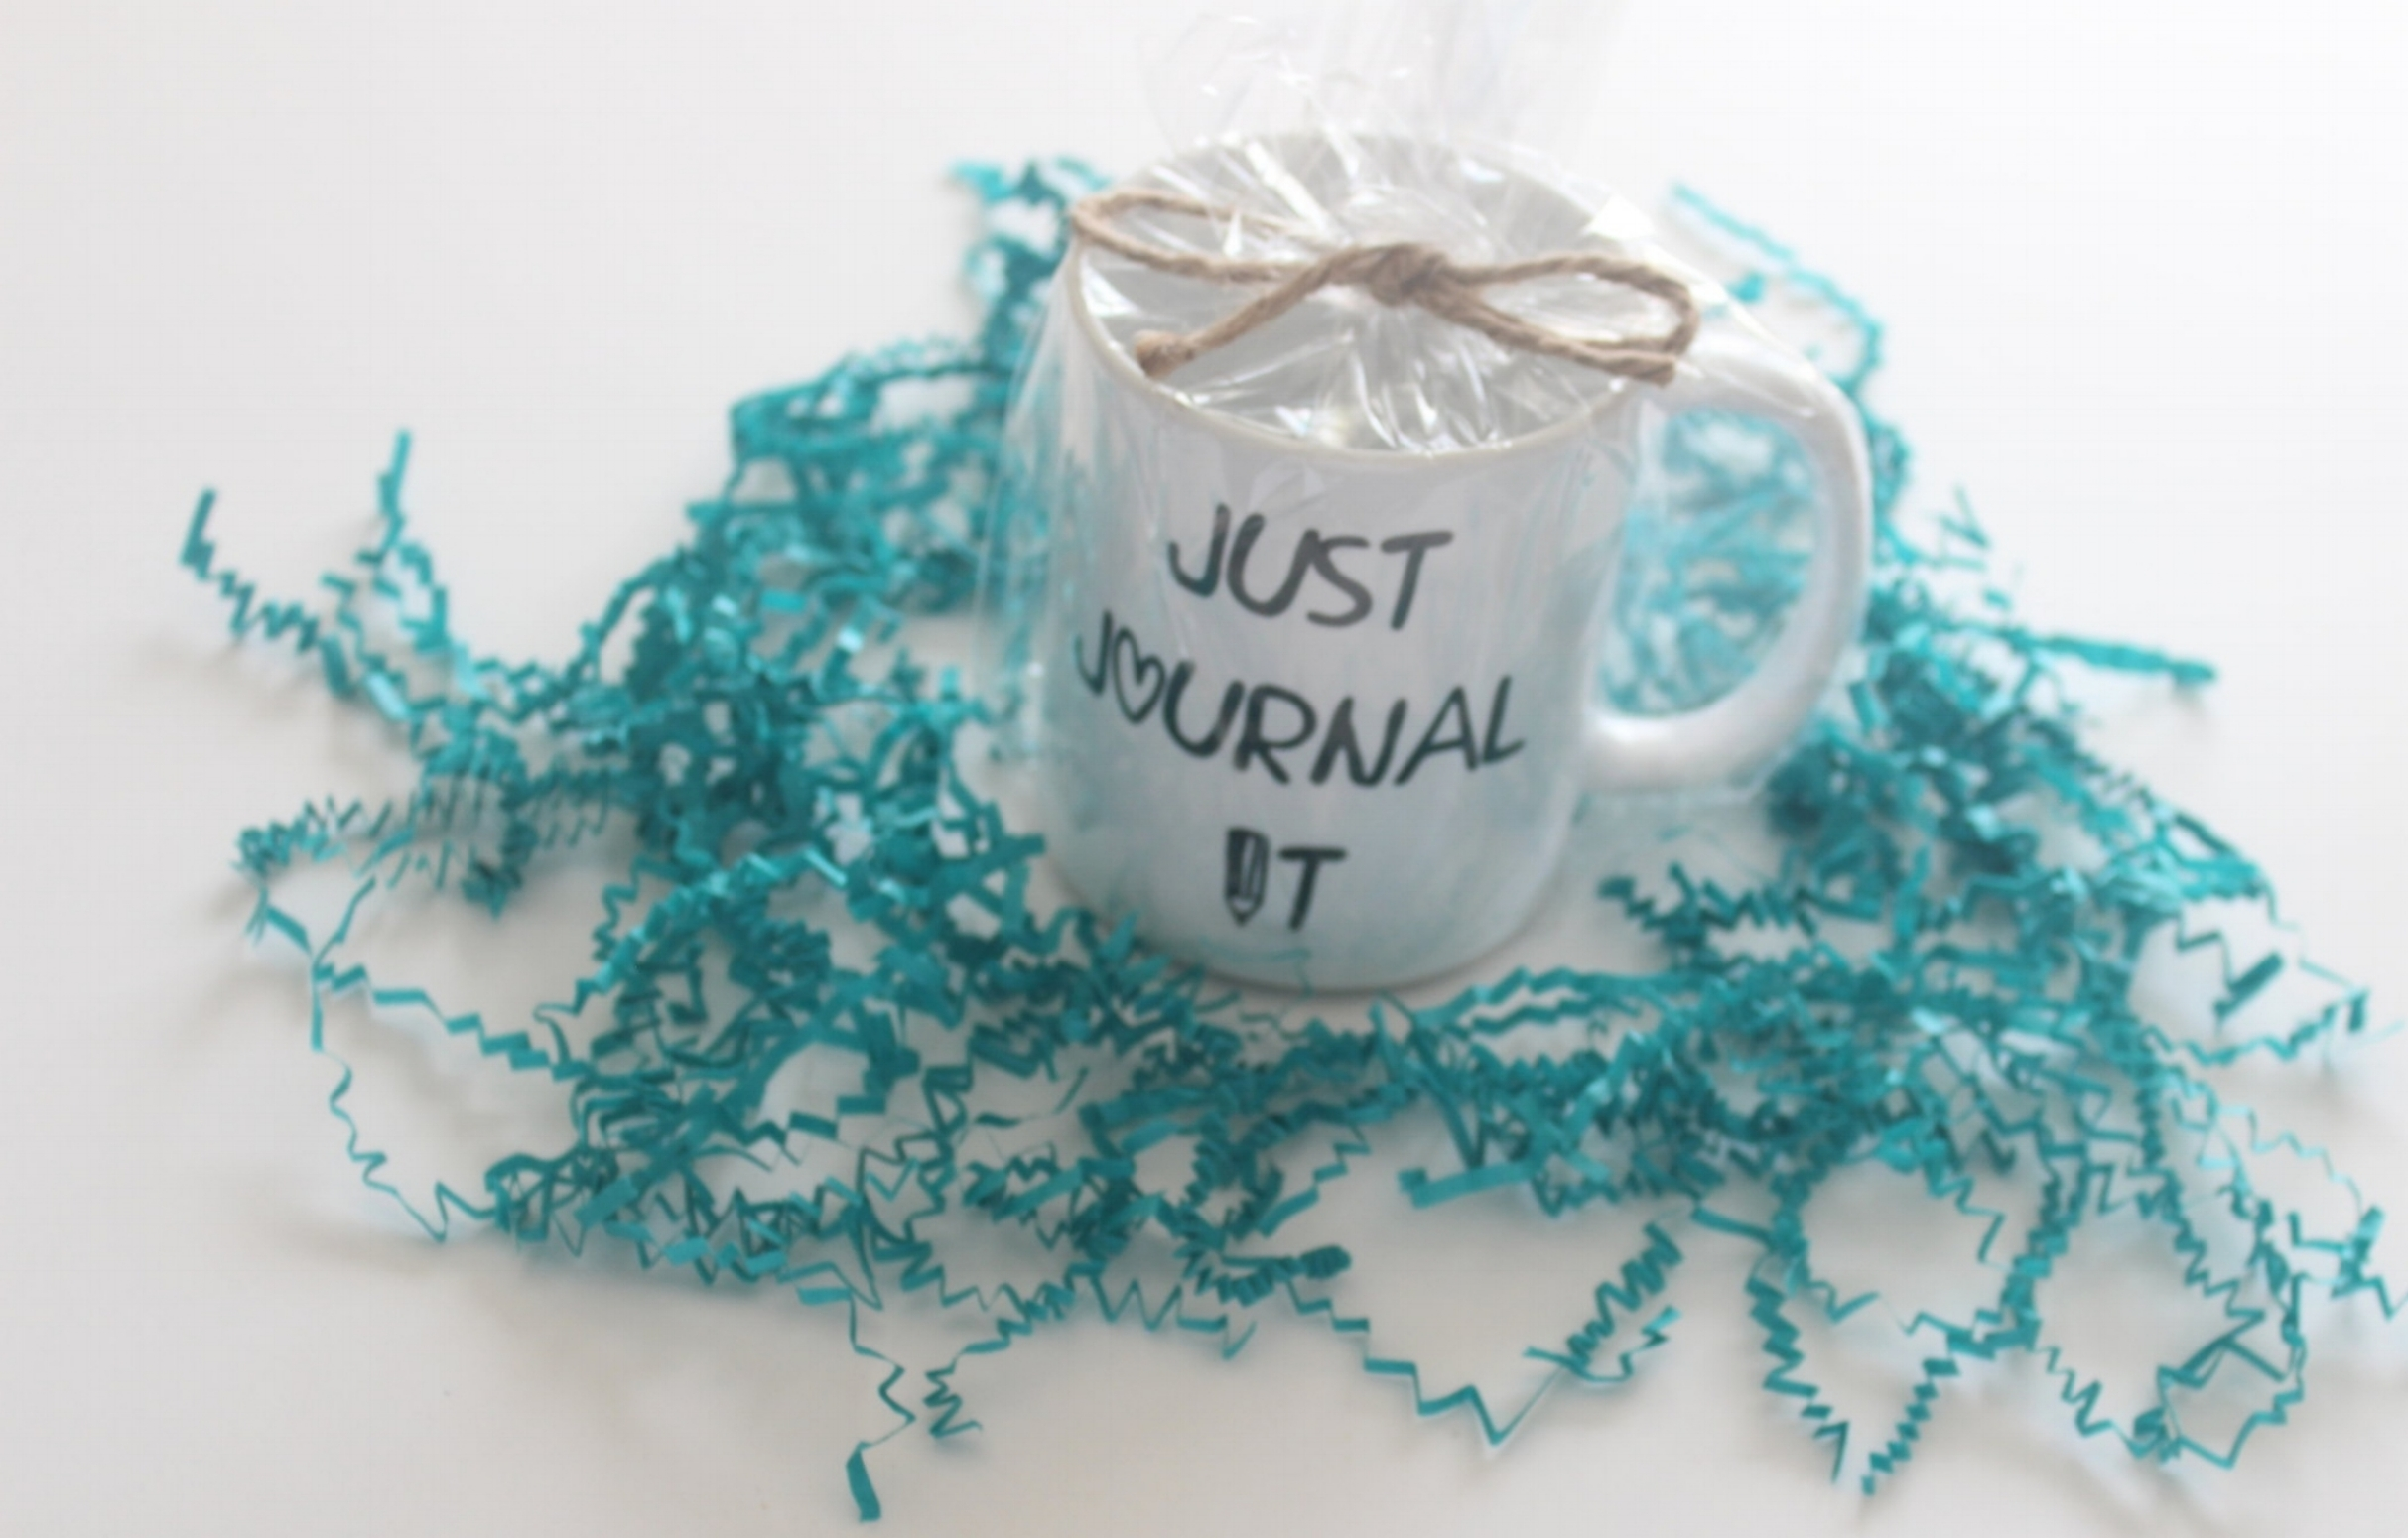 just journal it pencil mug